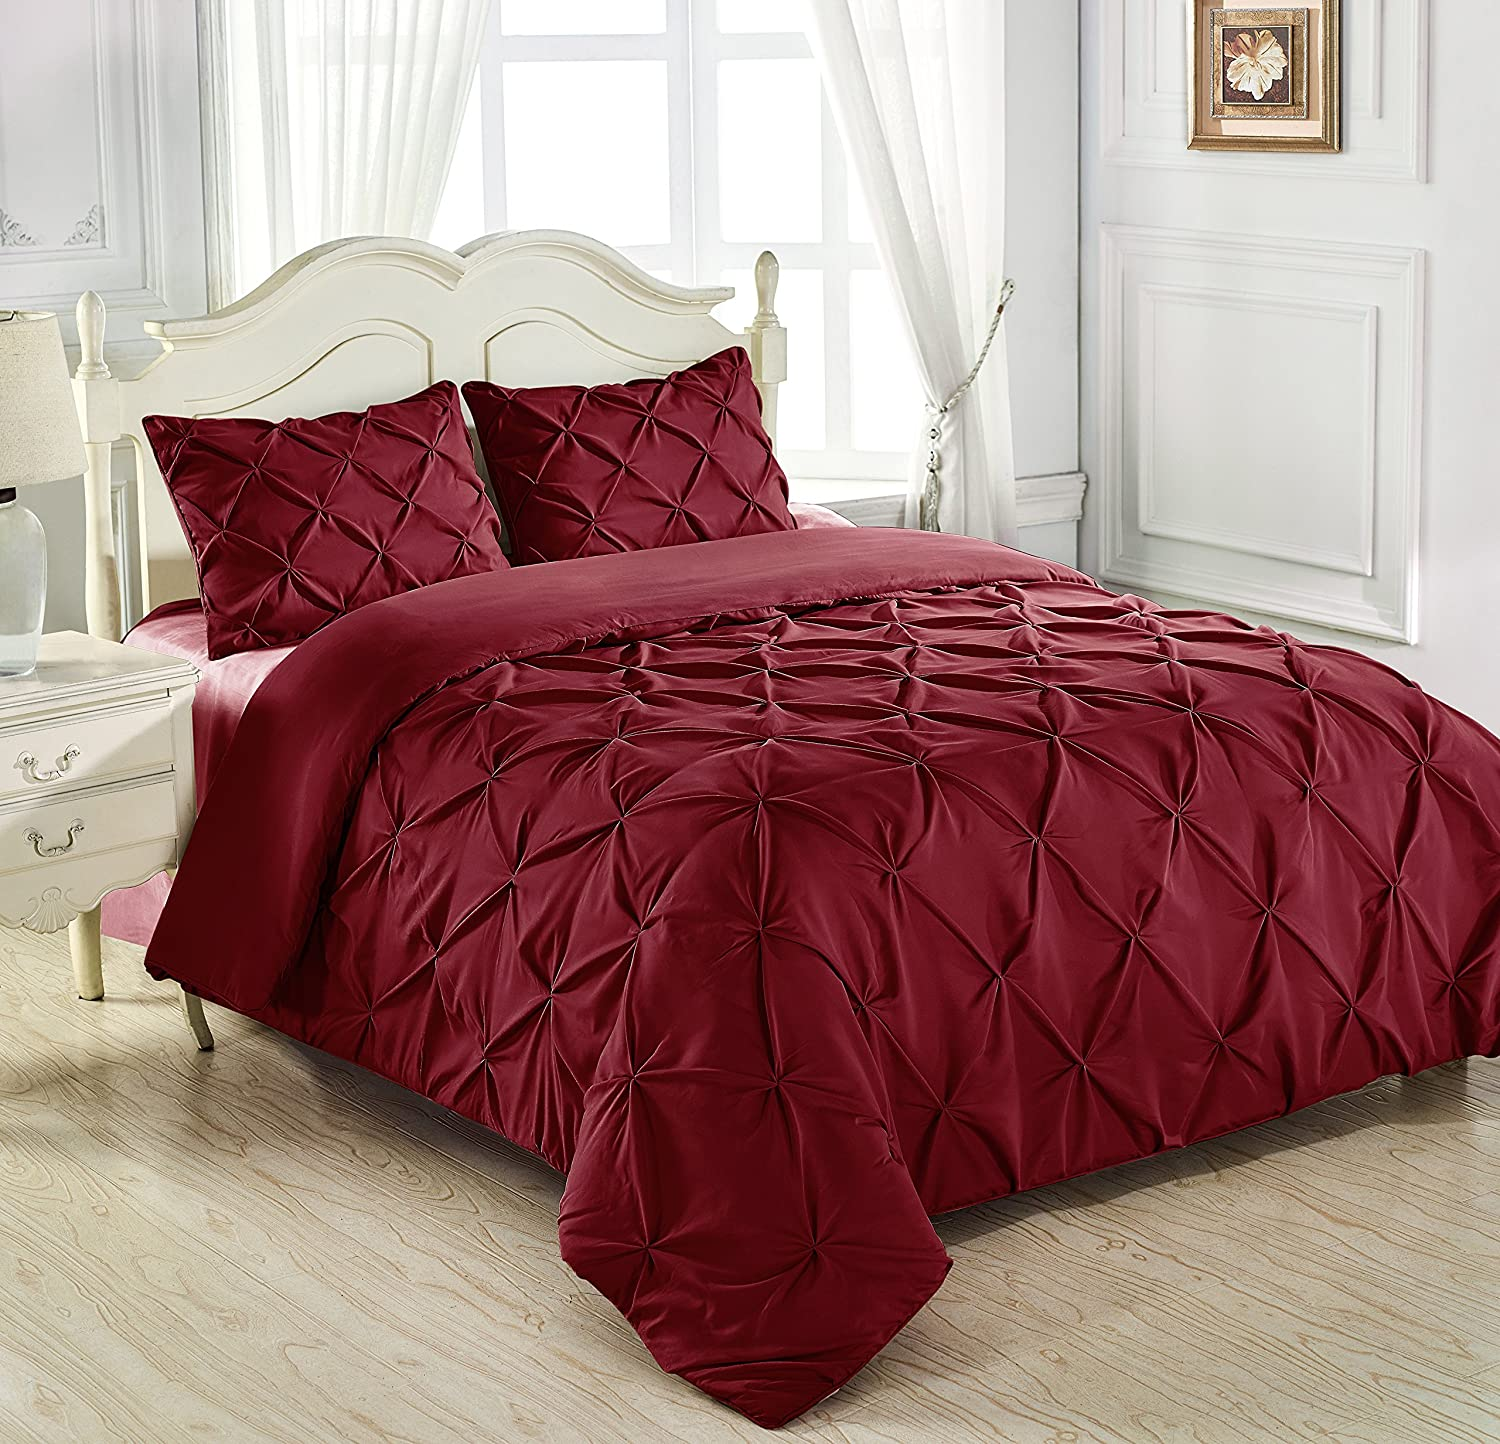 King & Queen Home 3 Piece Pinch Pleat Comforter Set in Burgundy (King